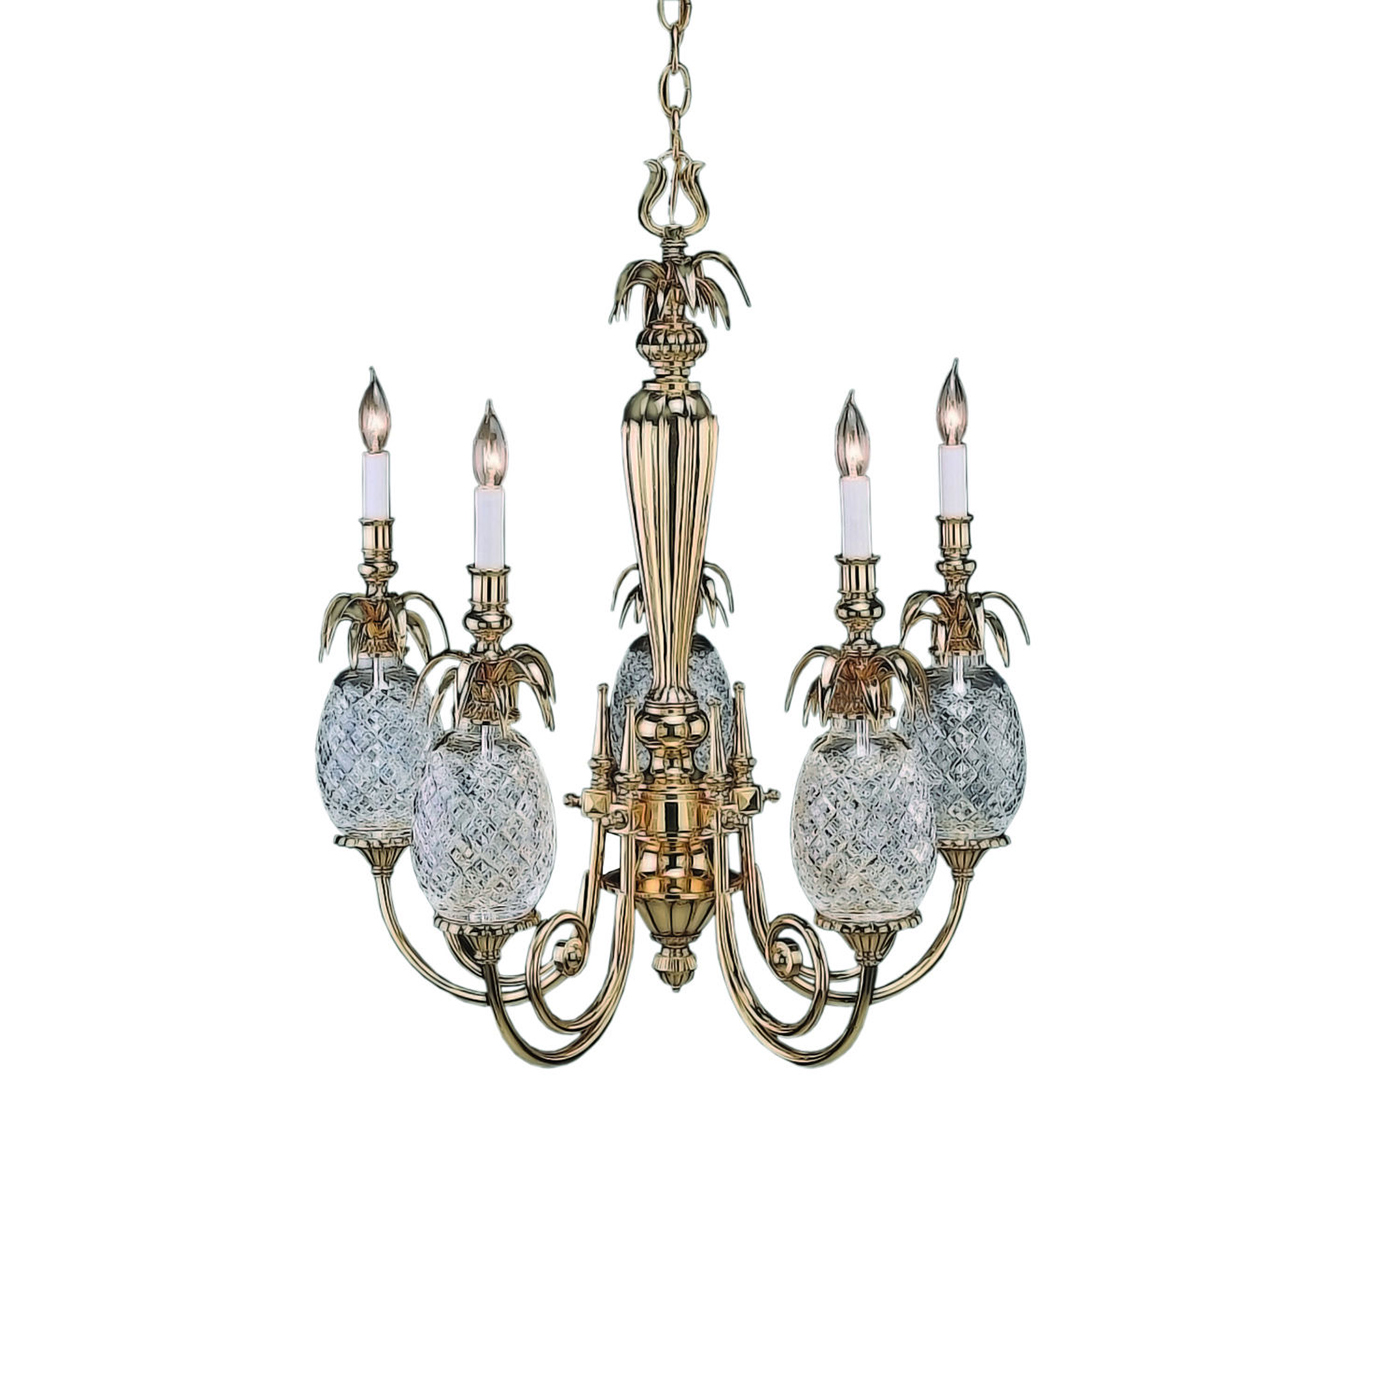 Pineapple Hospitality 5 Arm Chandelier by Waterford